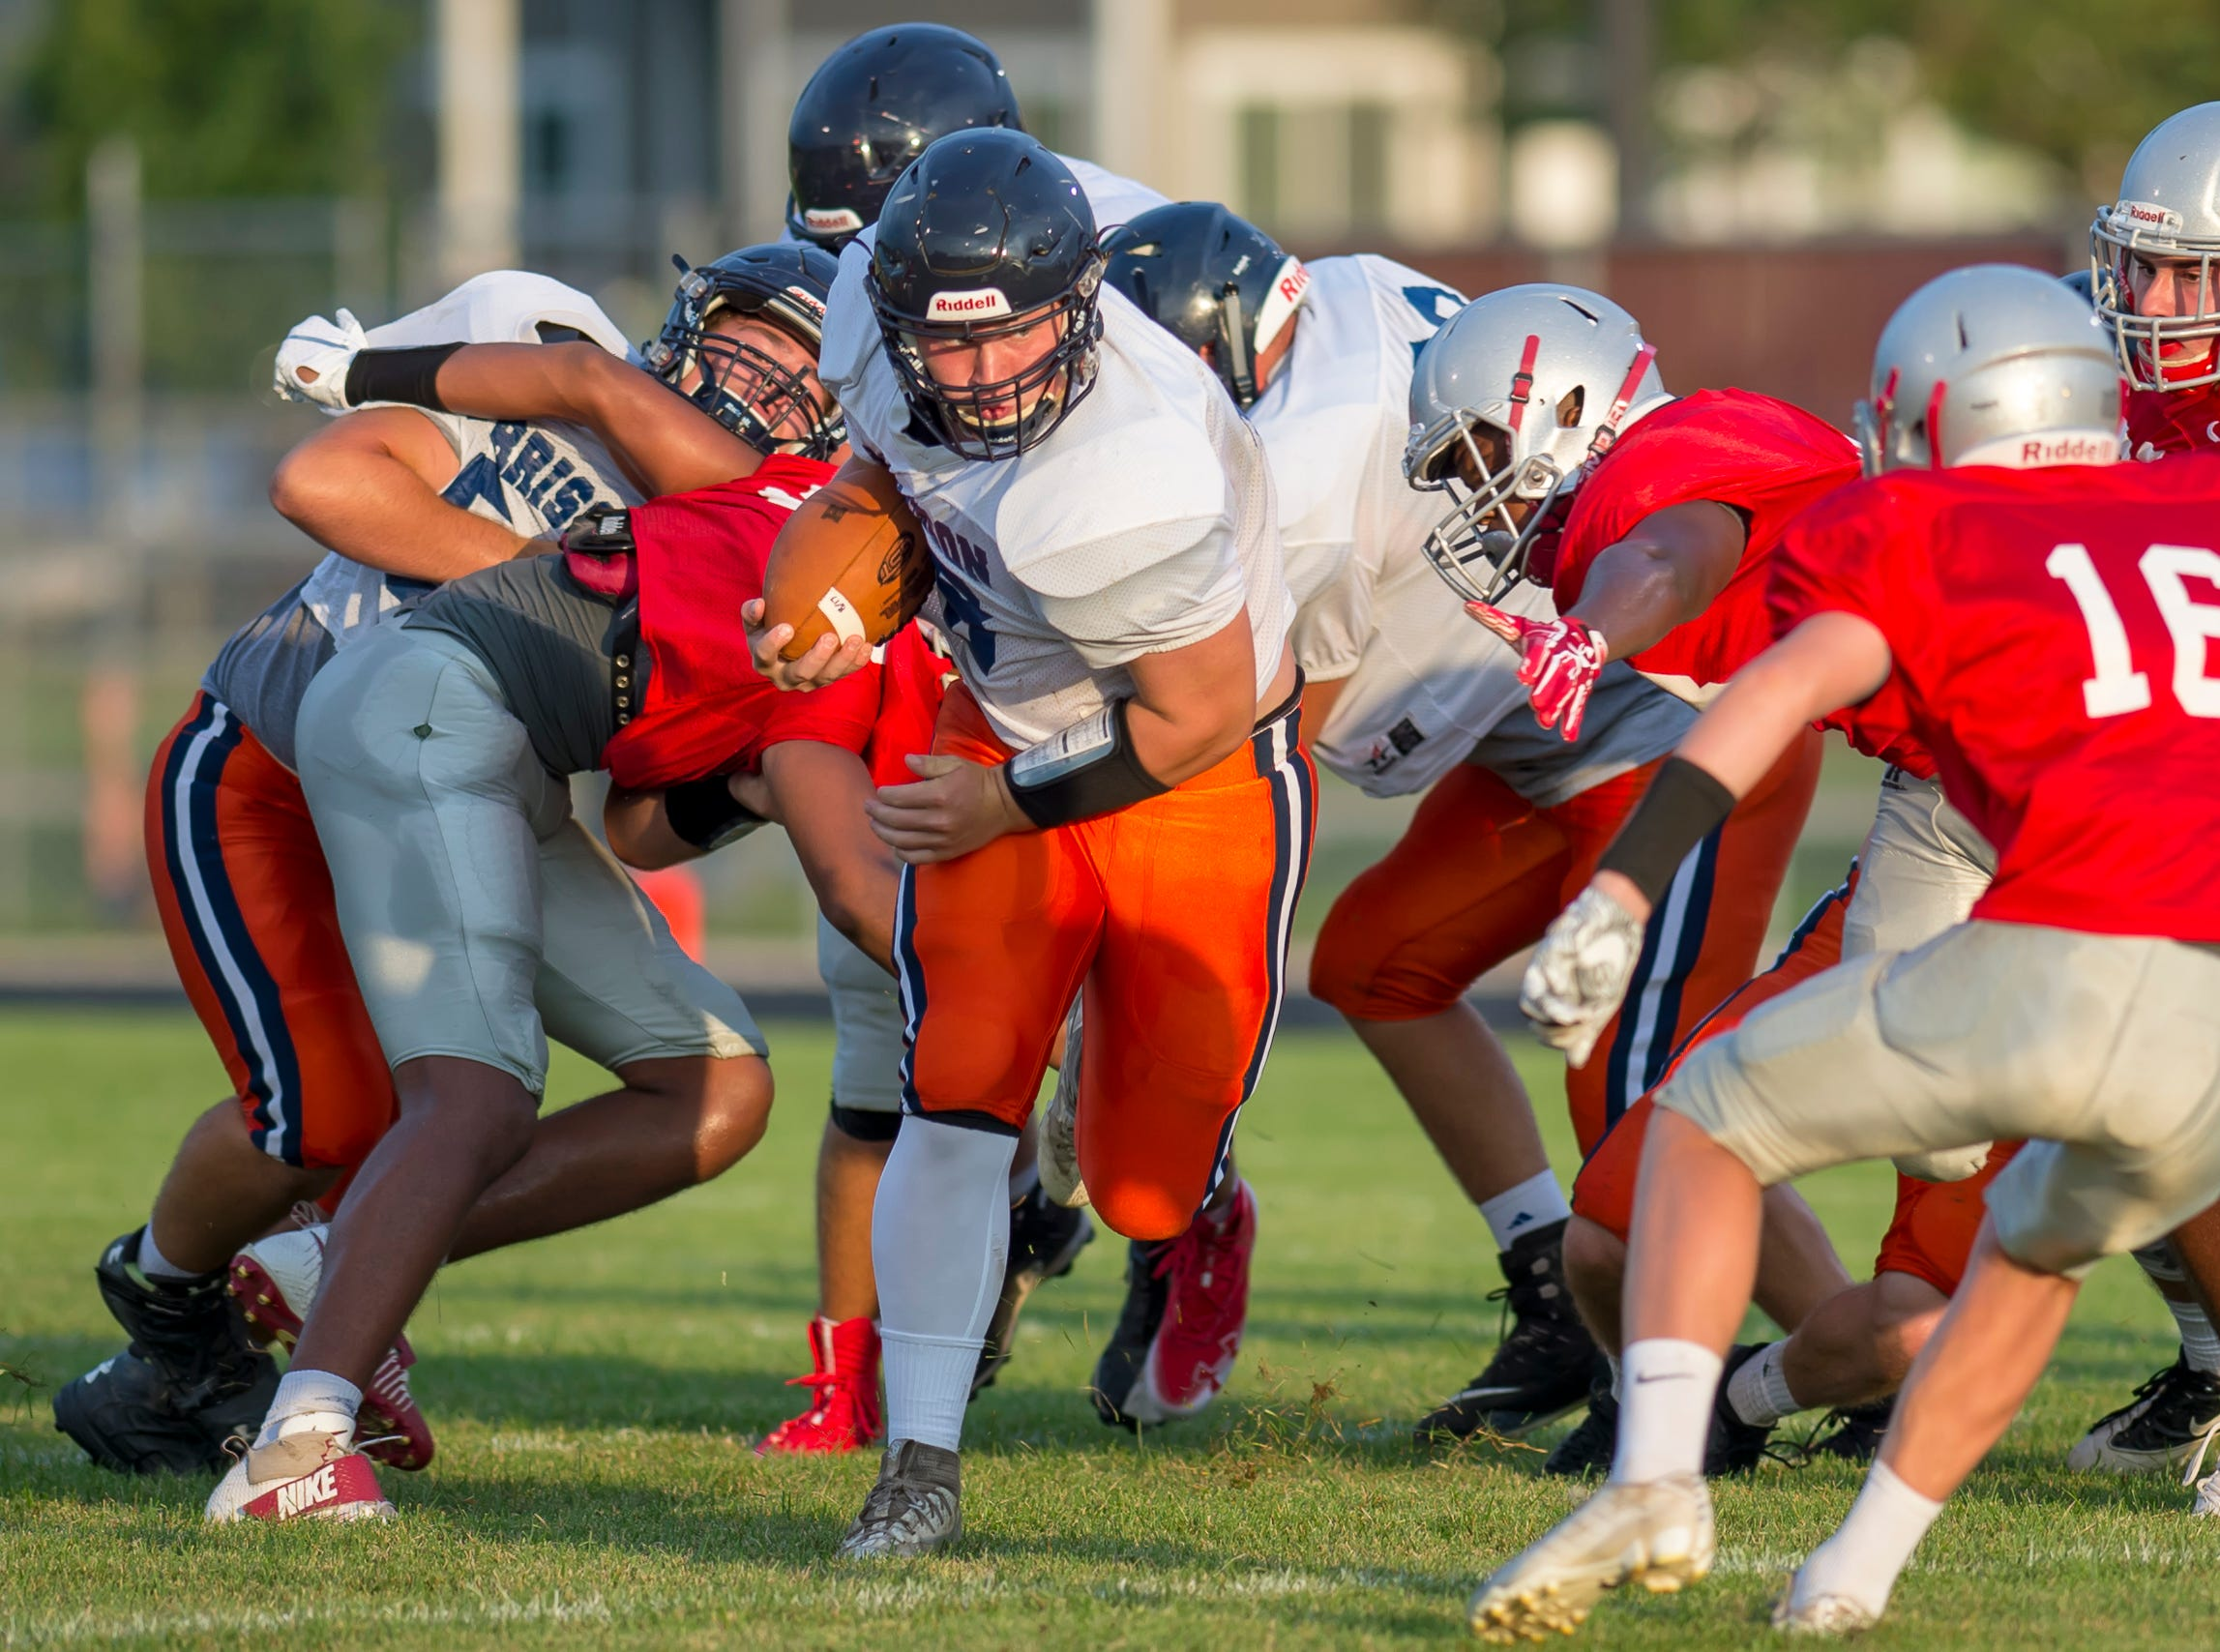 Action from the football scrimmage between the Harrison Raiders and the West Lafayette Red Devils from Gordon Straley Field